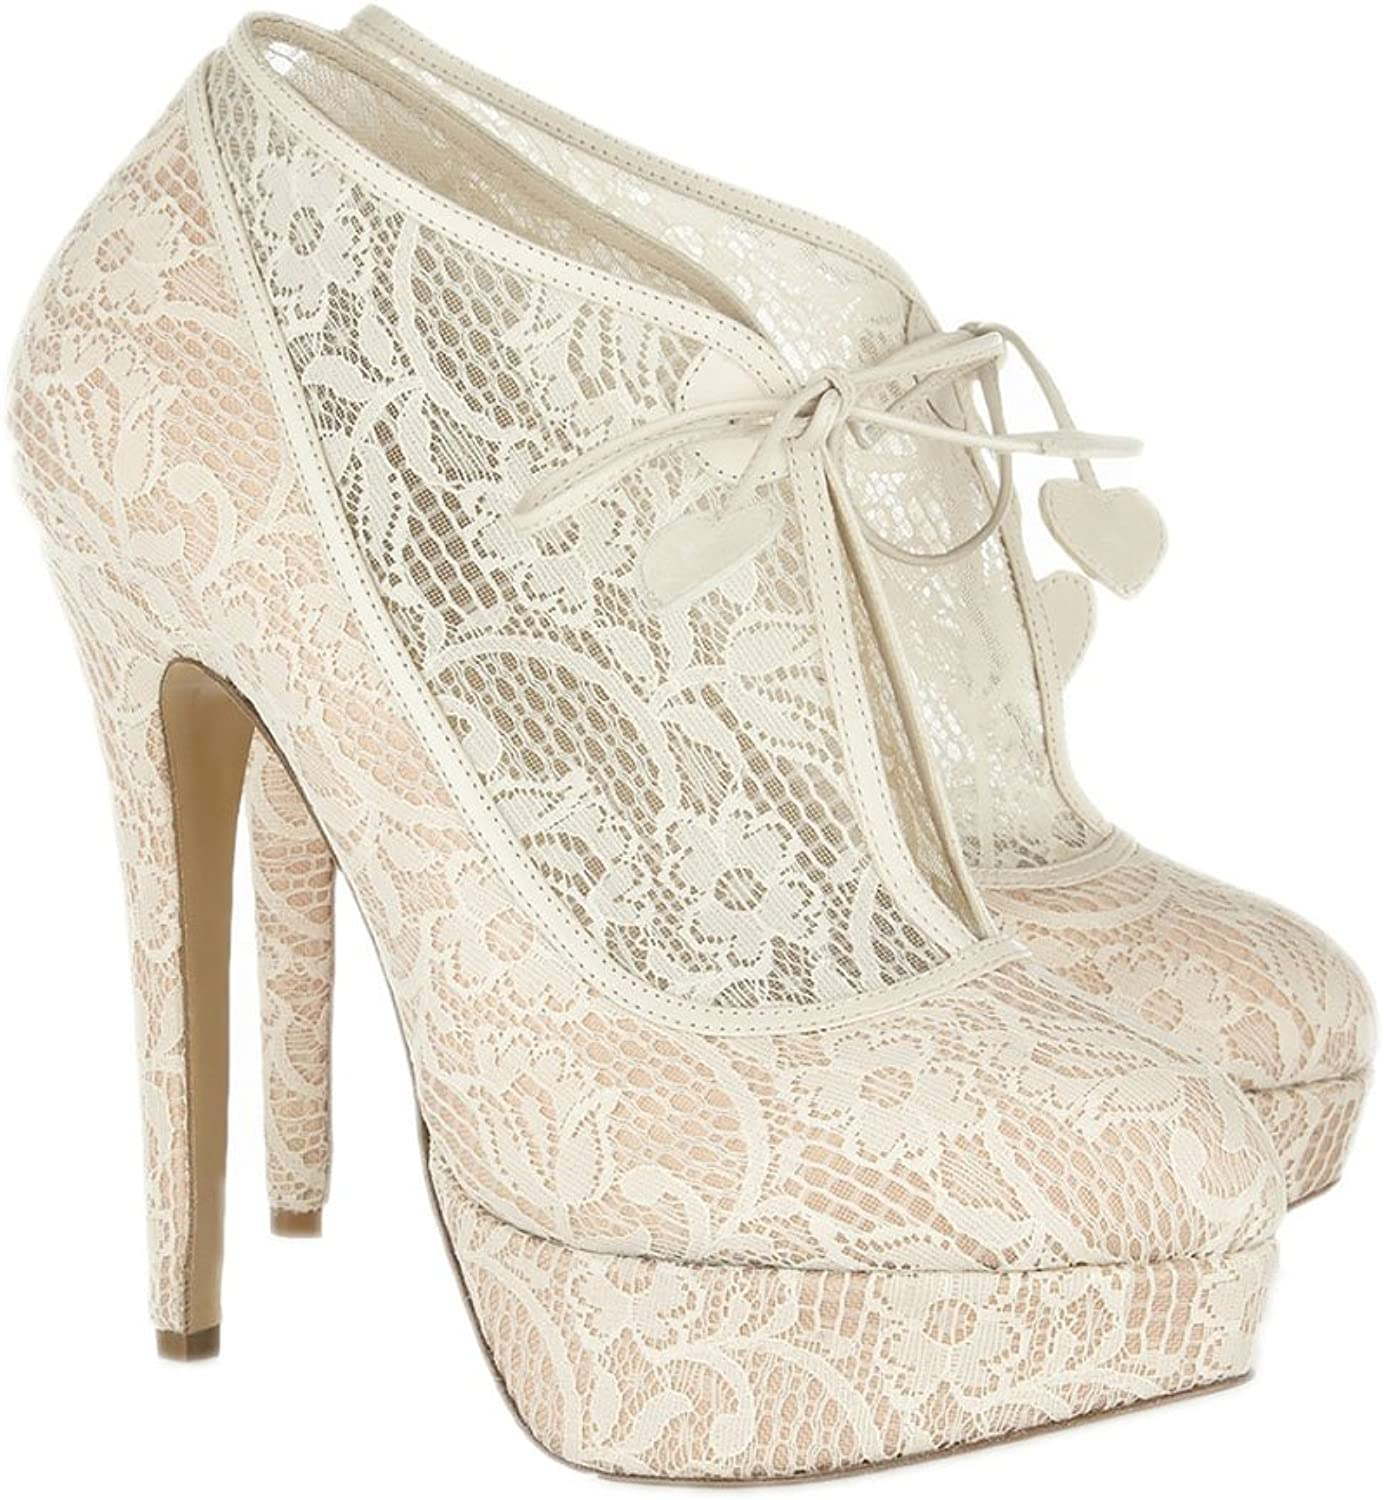 Lacitena Lace Bridal High Heel Platform Pointed Toe Pumps - Faux Leather Pointed Toe Fashion Pumps